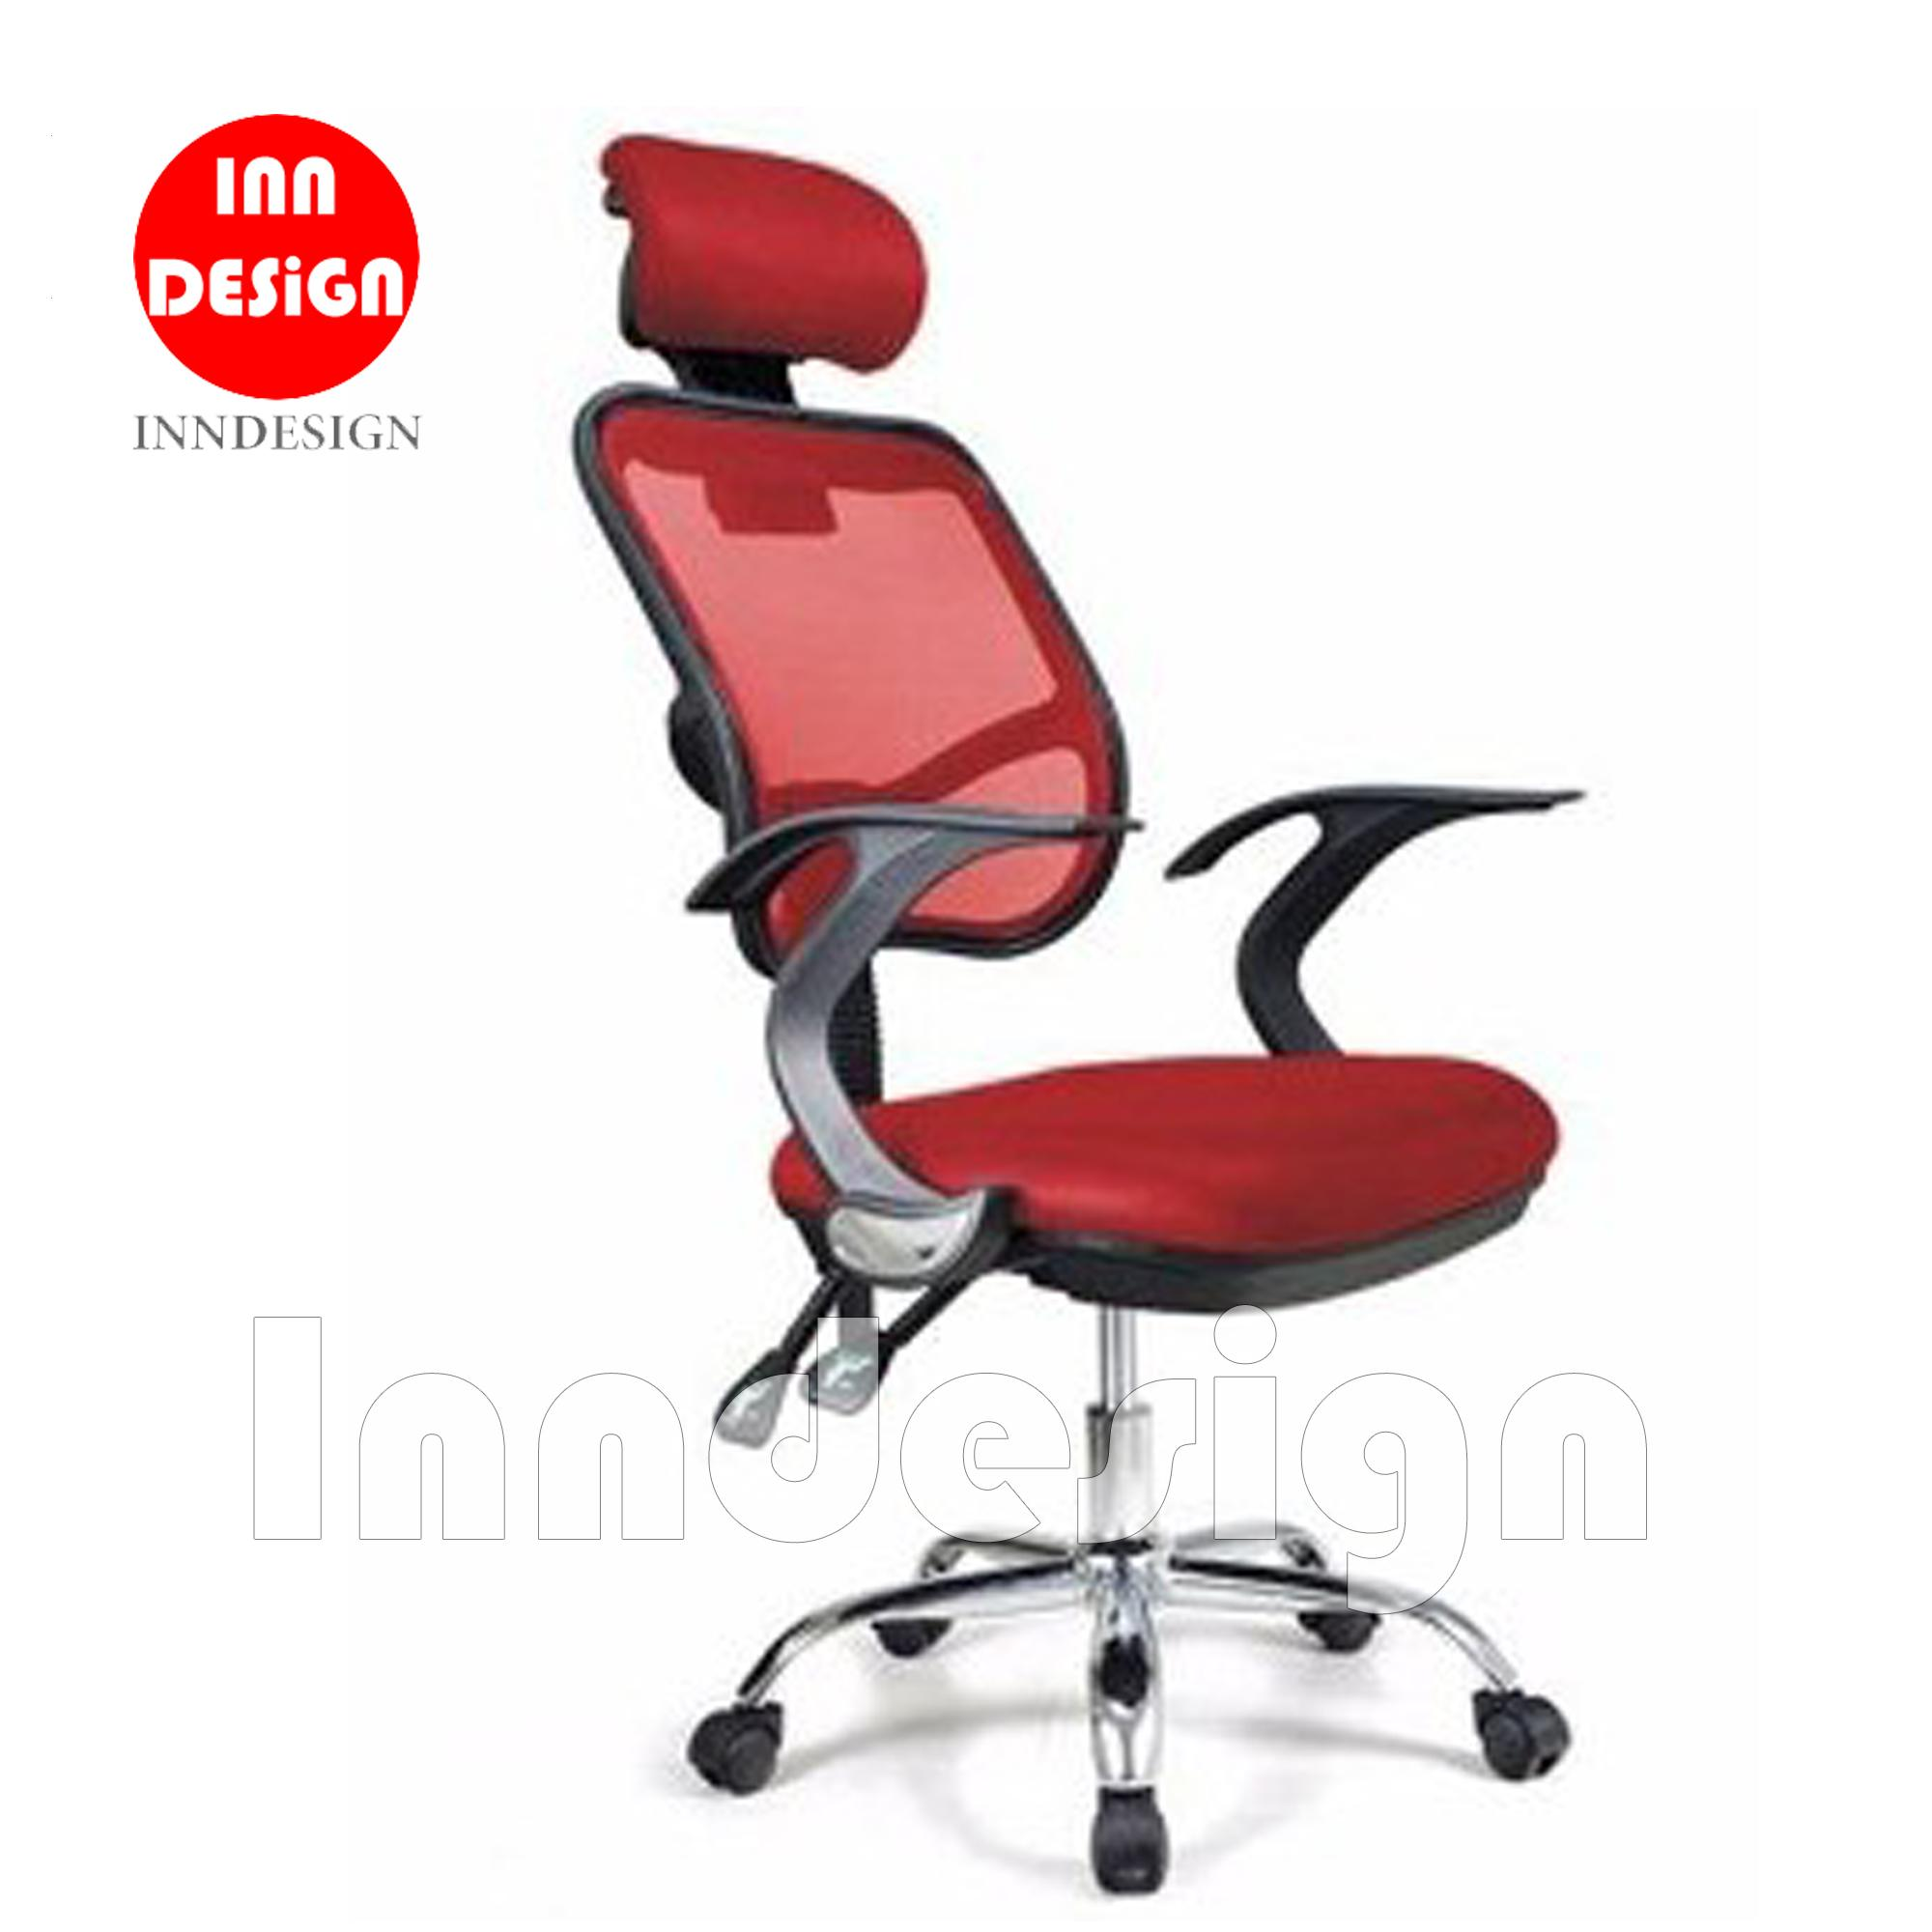 Dolando Adjustable Swivel Mesh Office Chair with PVC Chrome Leg / Study Chair / Chair (Red)